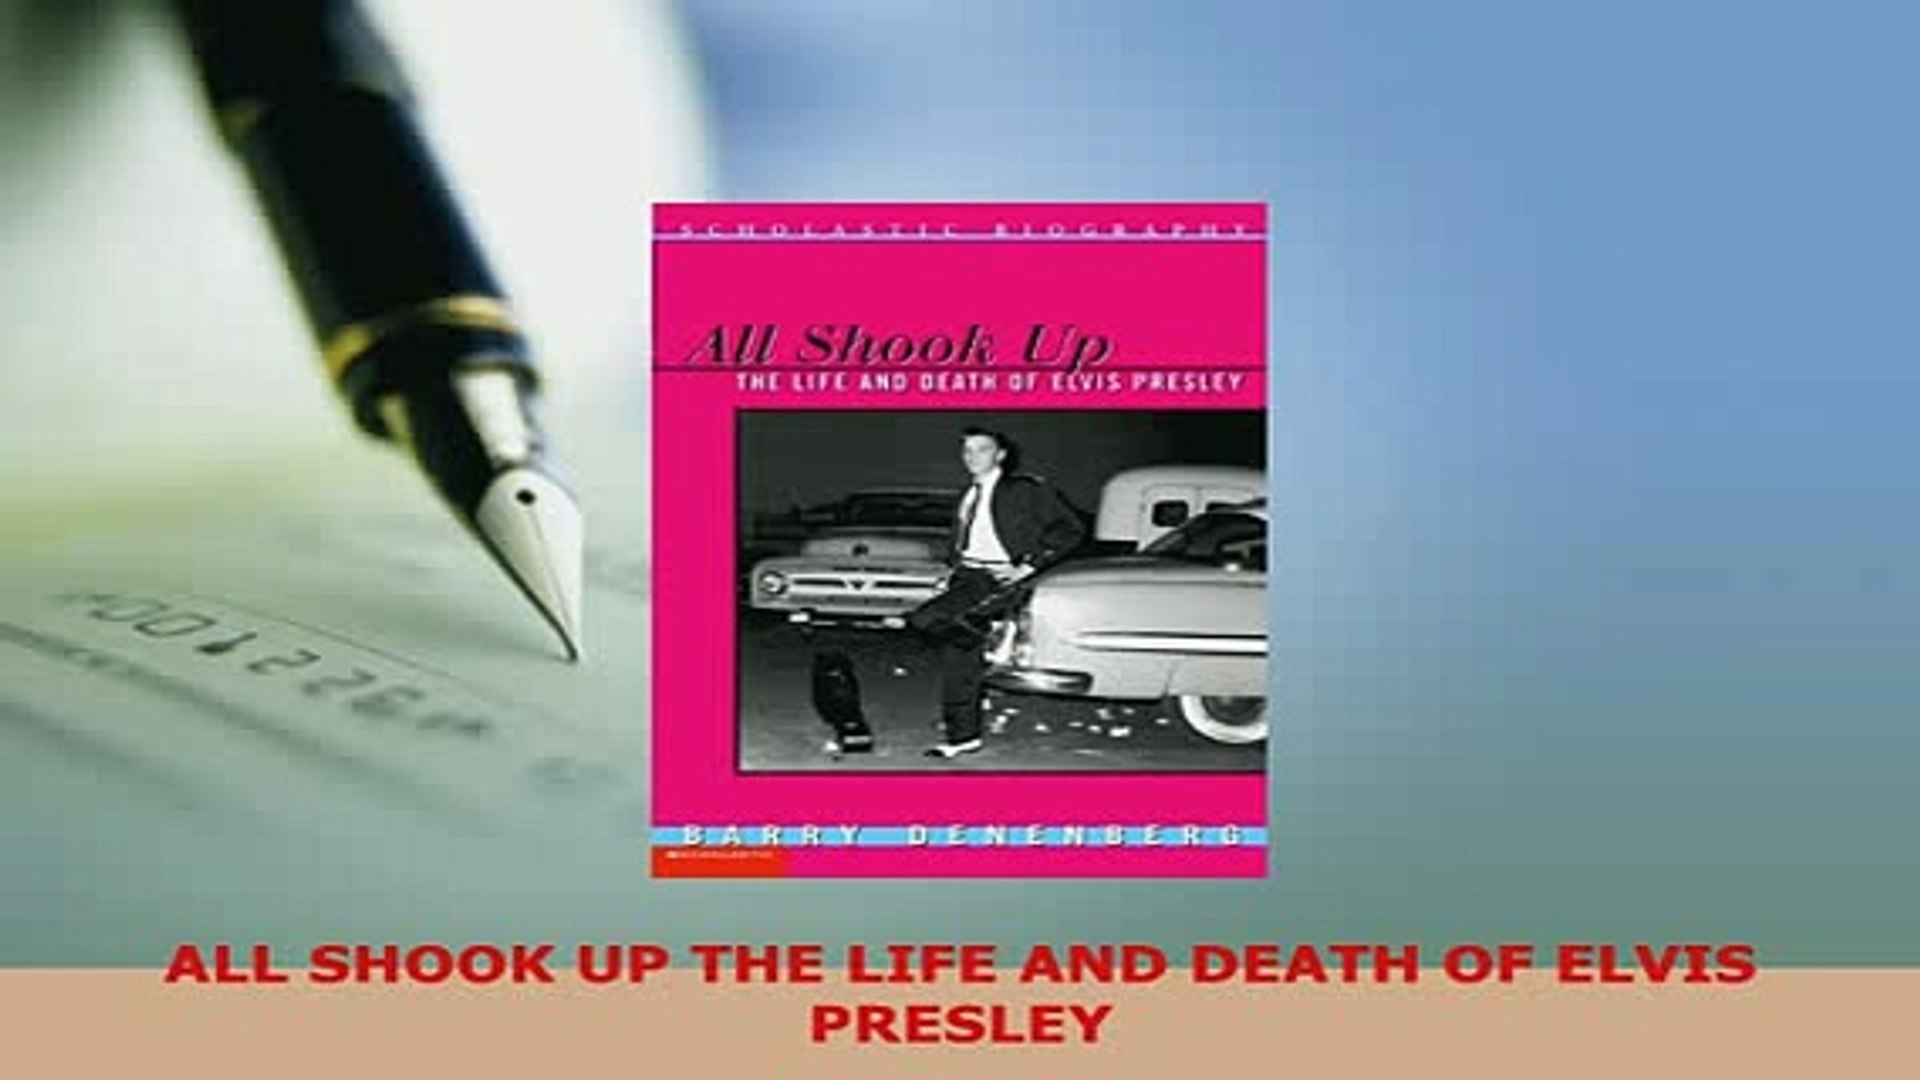 Download  ALL SHOOK UP THE LIFE AND DEATH OF ELVIS PRESLEY Ebook